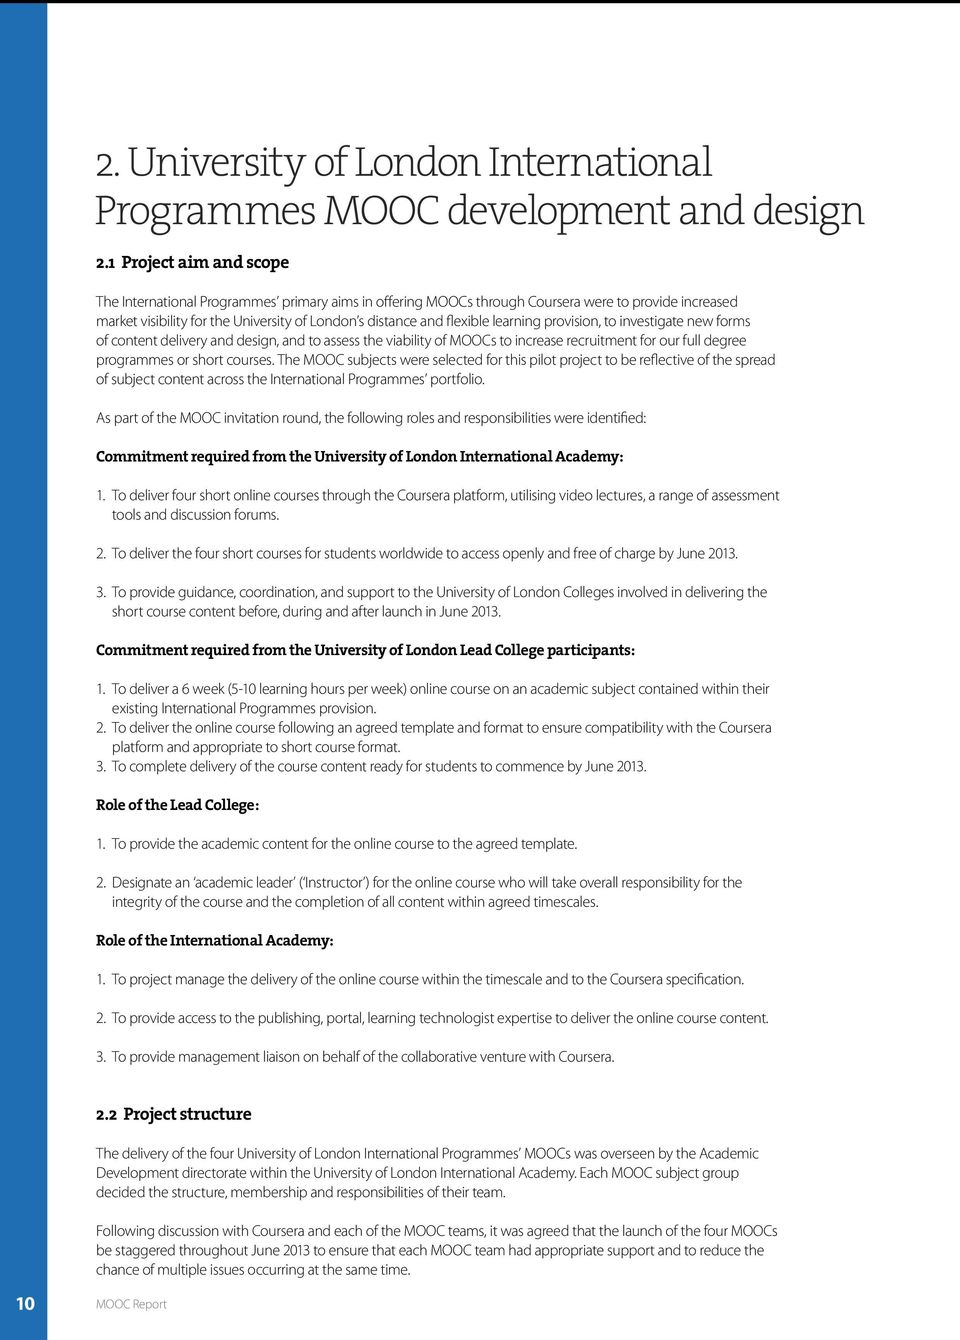 learning provision, to investigate new forms of content delivery and design, and to assess the viability of MOOCs to increase recruitment for our full degree programmes or short courses.